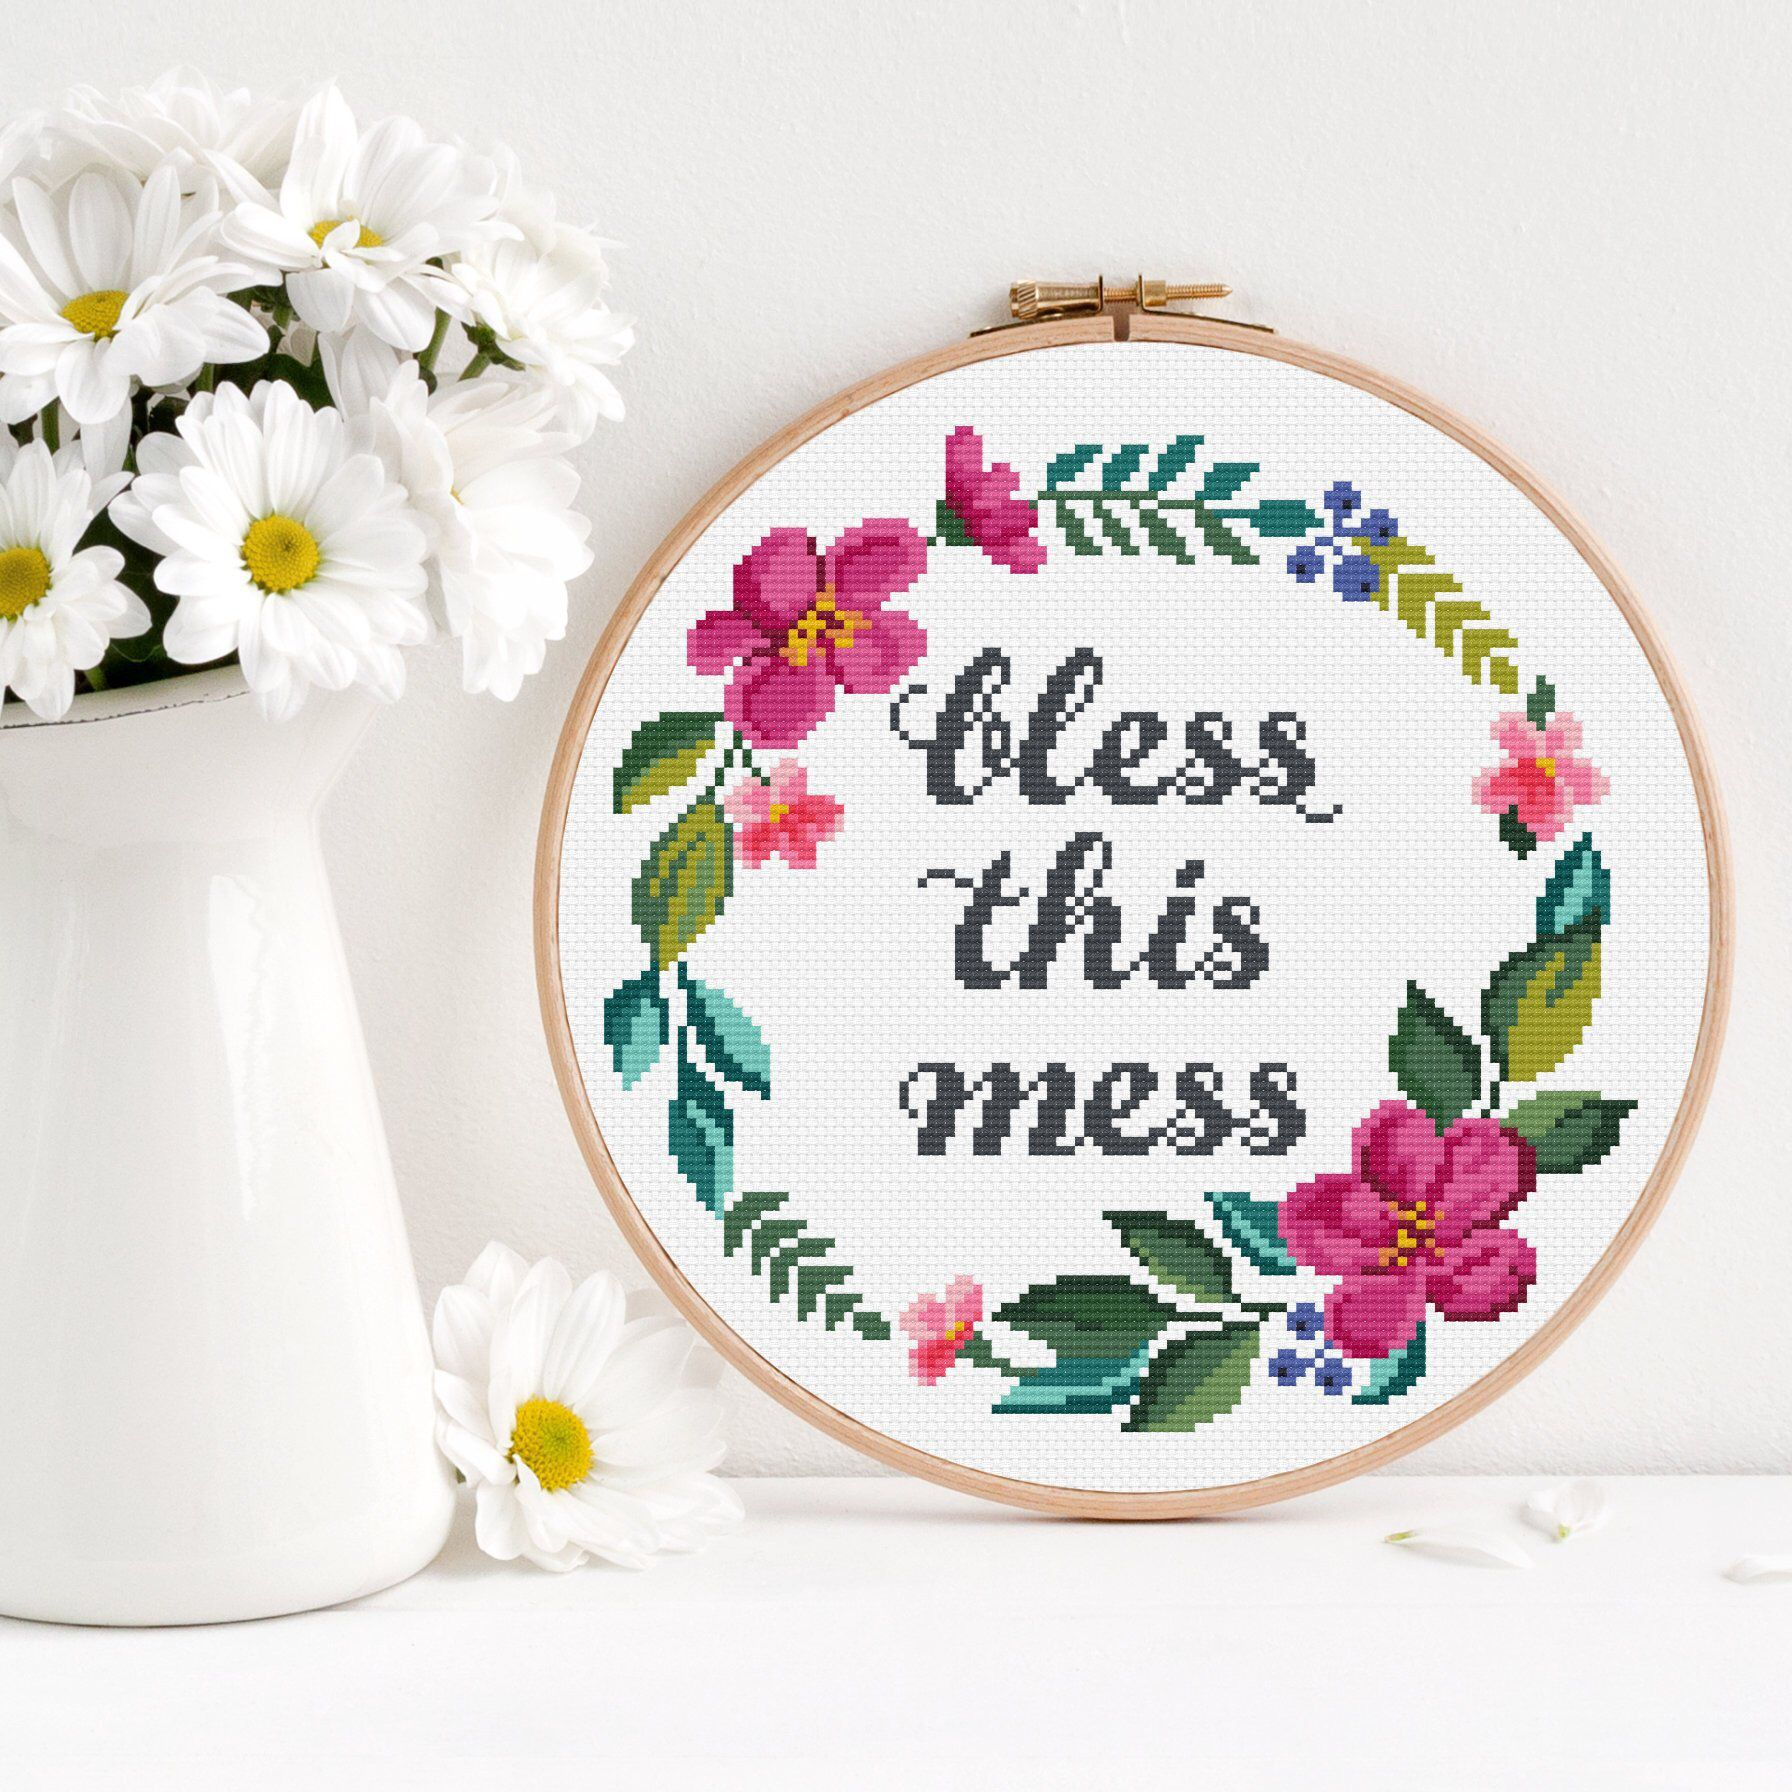 Photo of Cross stitch pattern Bless this mess / Quote cross stitch / Funny cross stitch pattern / Floral cross stitch / Flower wreath cross stitch